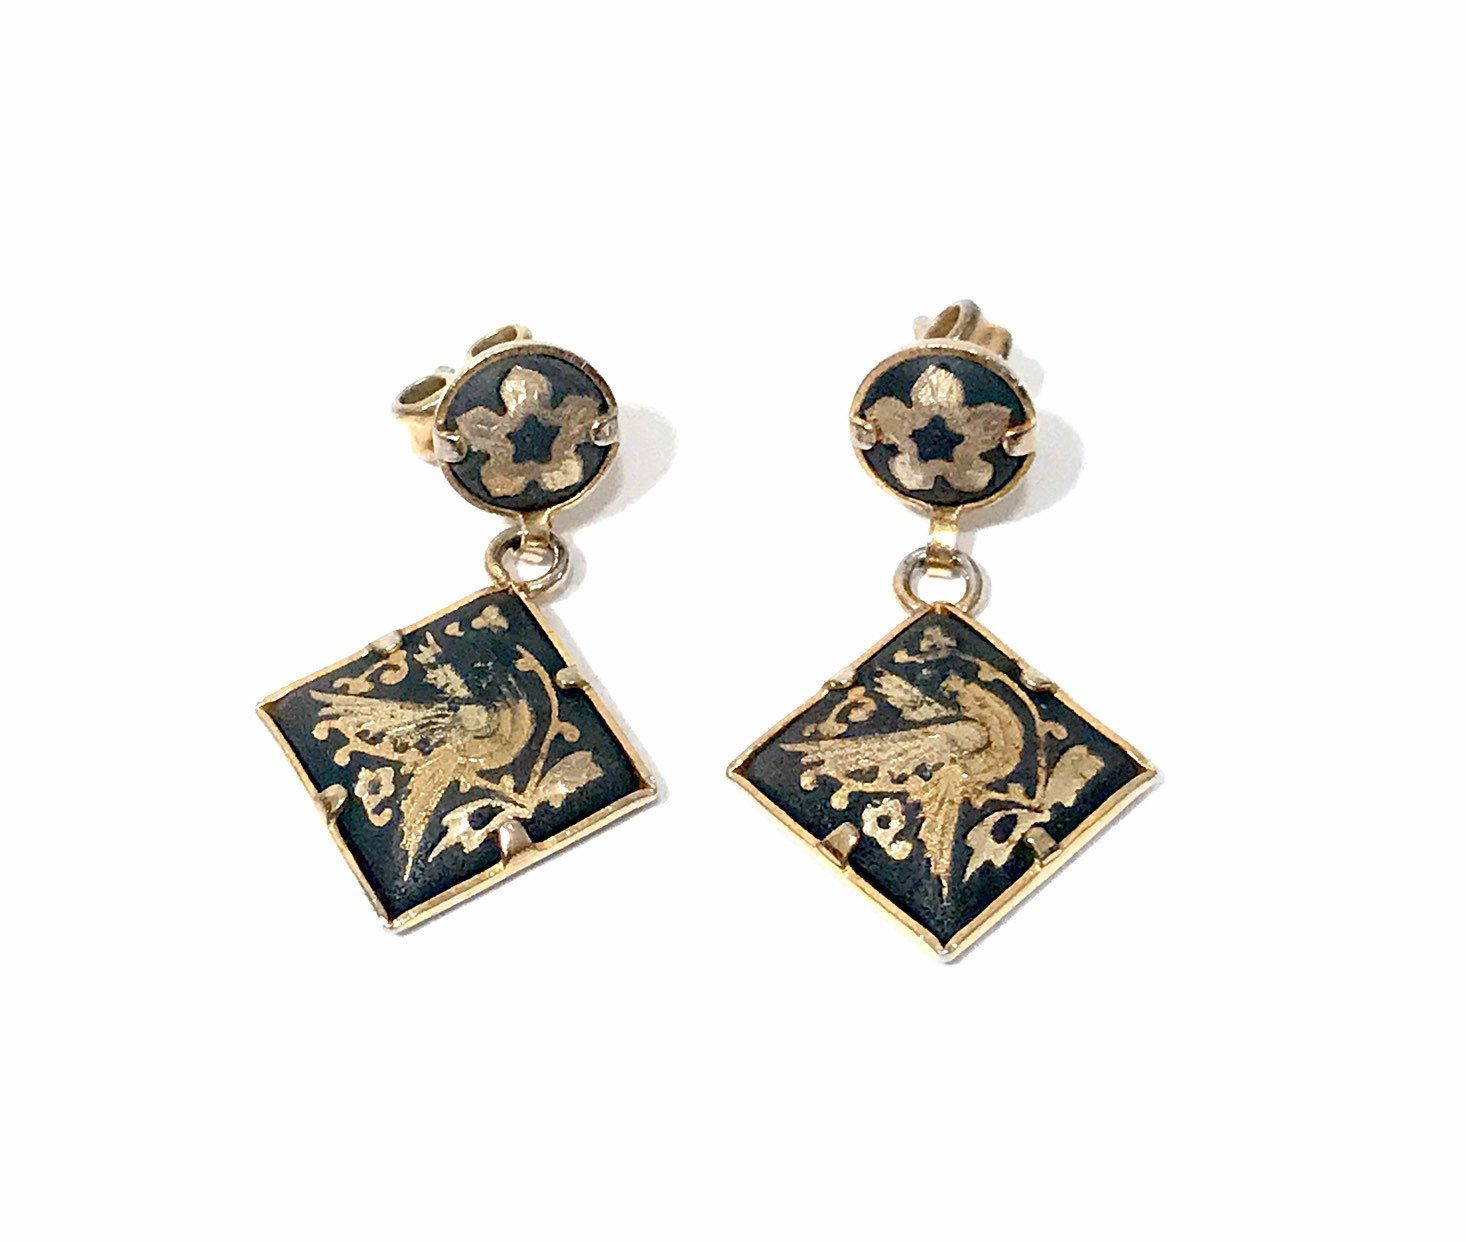 452882cc035 Vintage Damascene Earrings, Pierced Dangle, Black Gold, Bird And ...